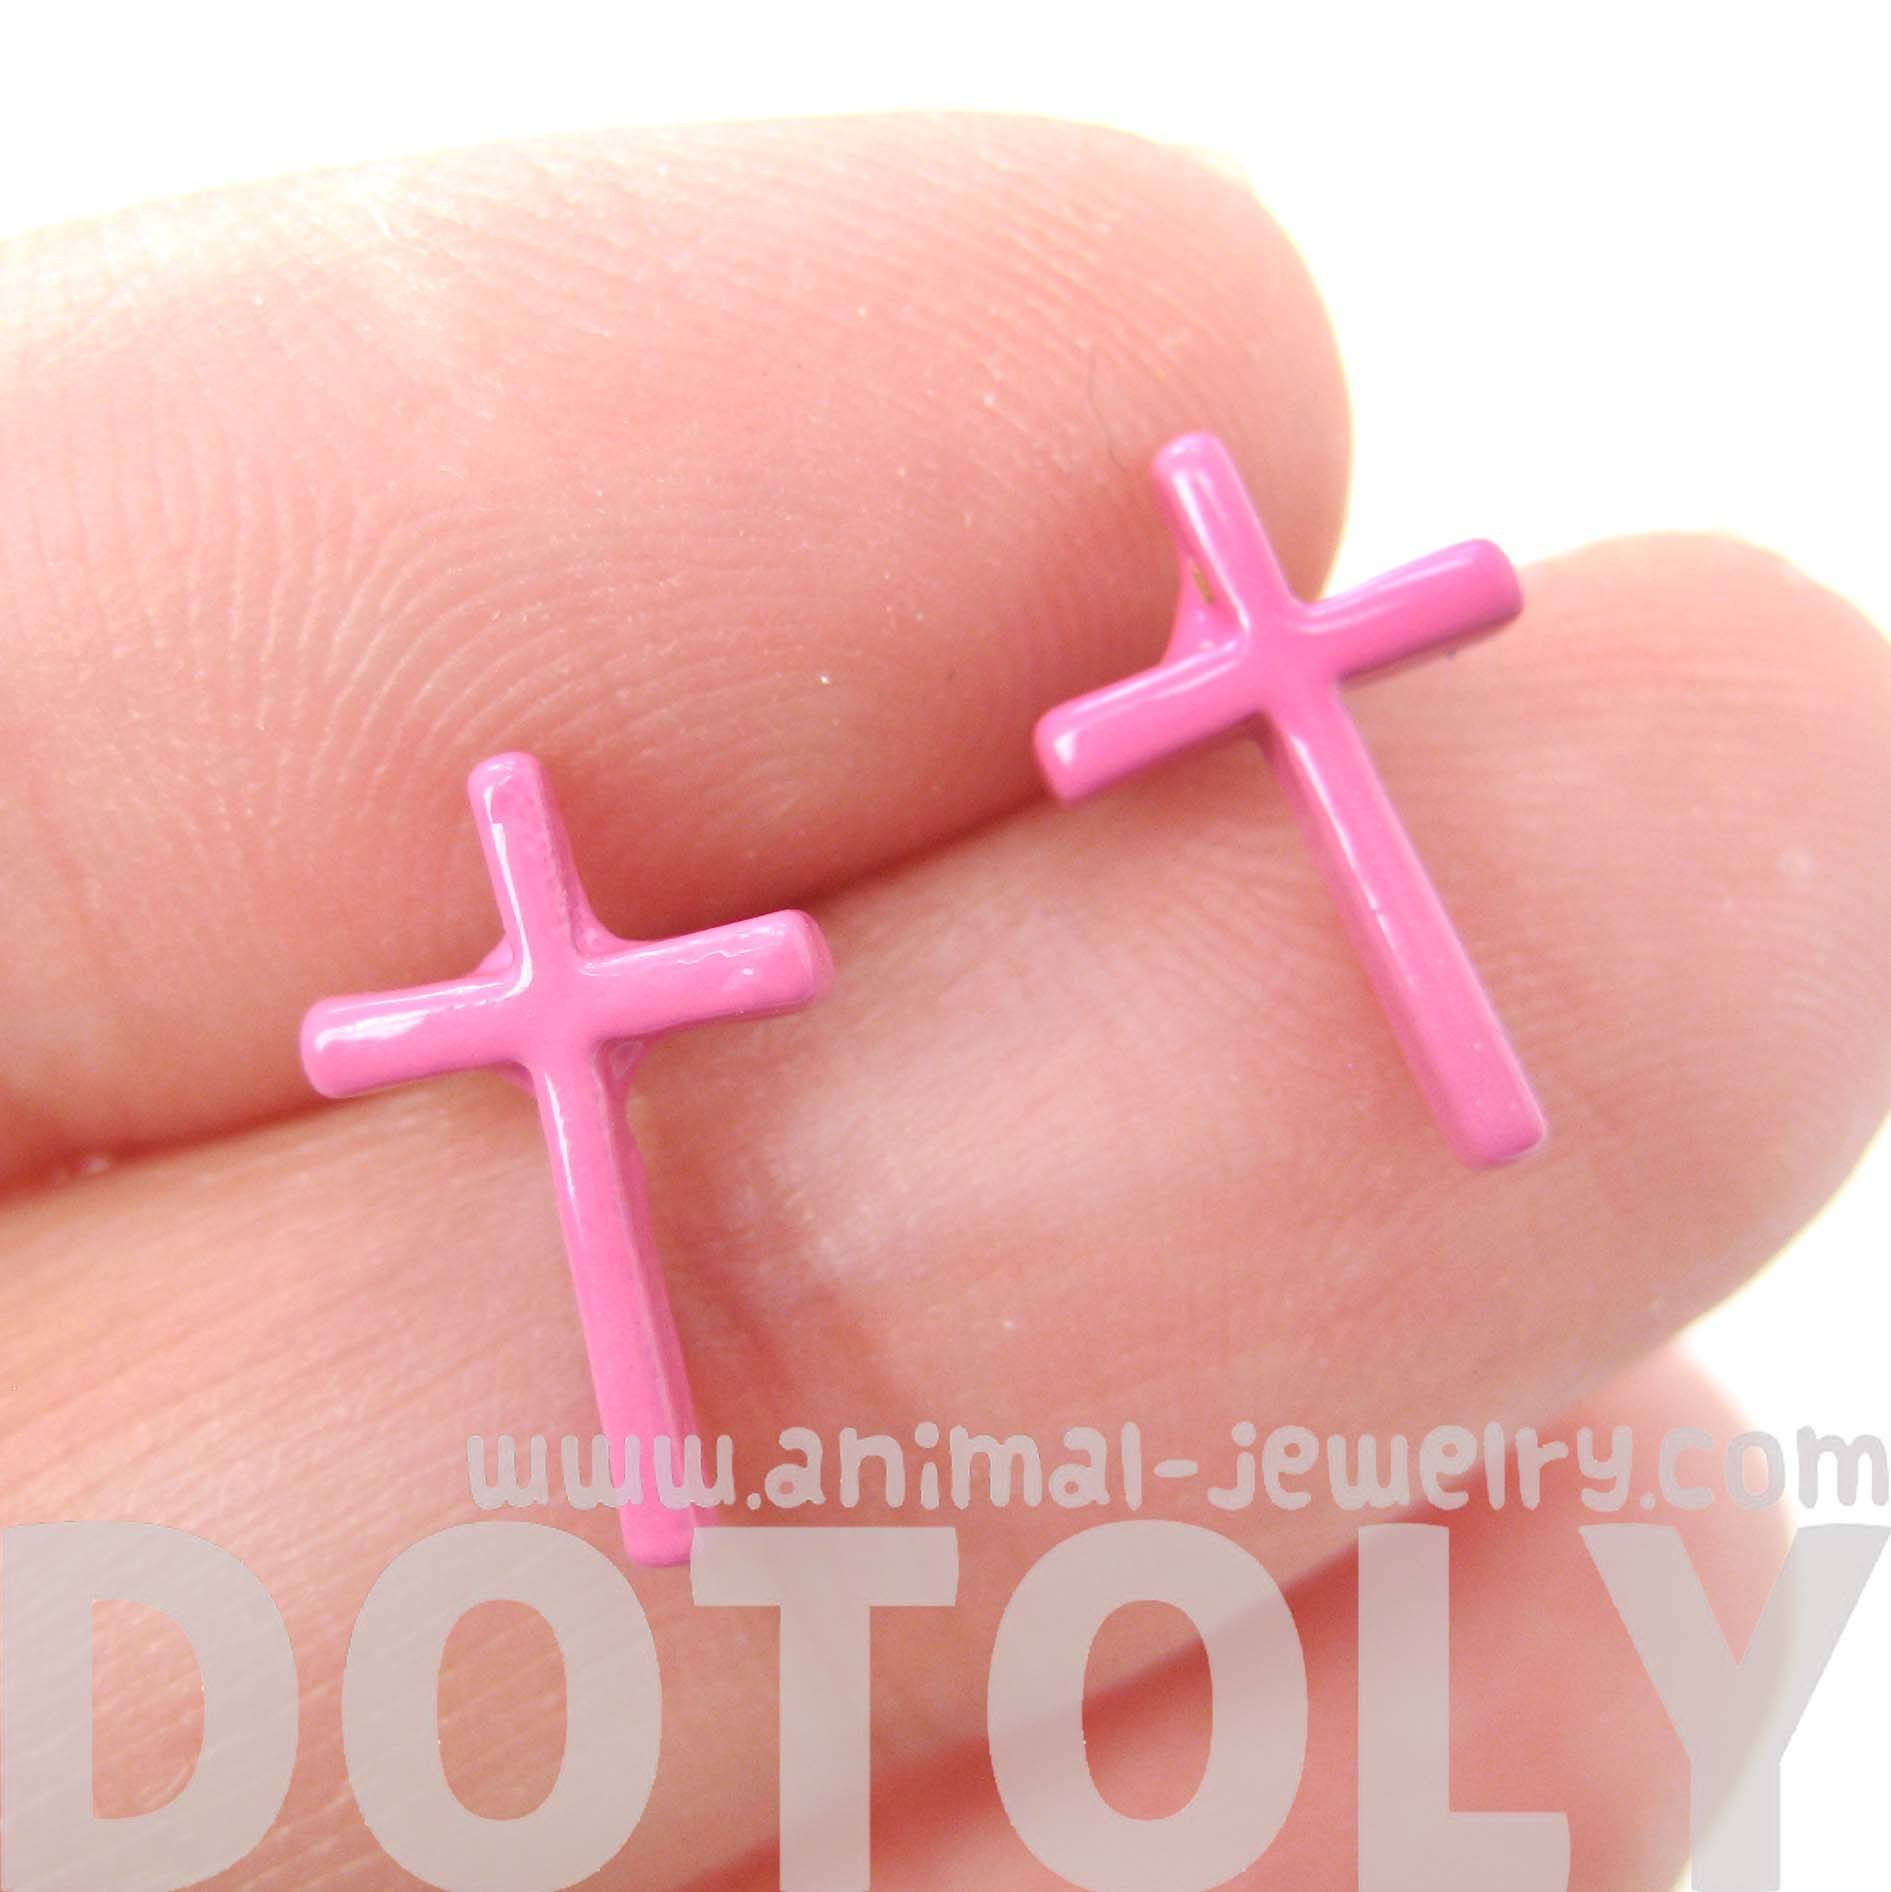 classic-small-cross-shaped-stud-earrings-in-pink-enamel-dotoly